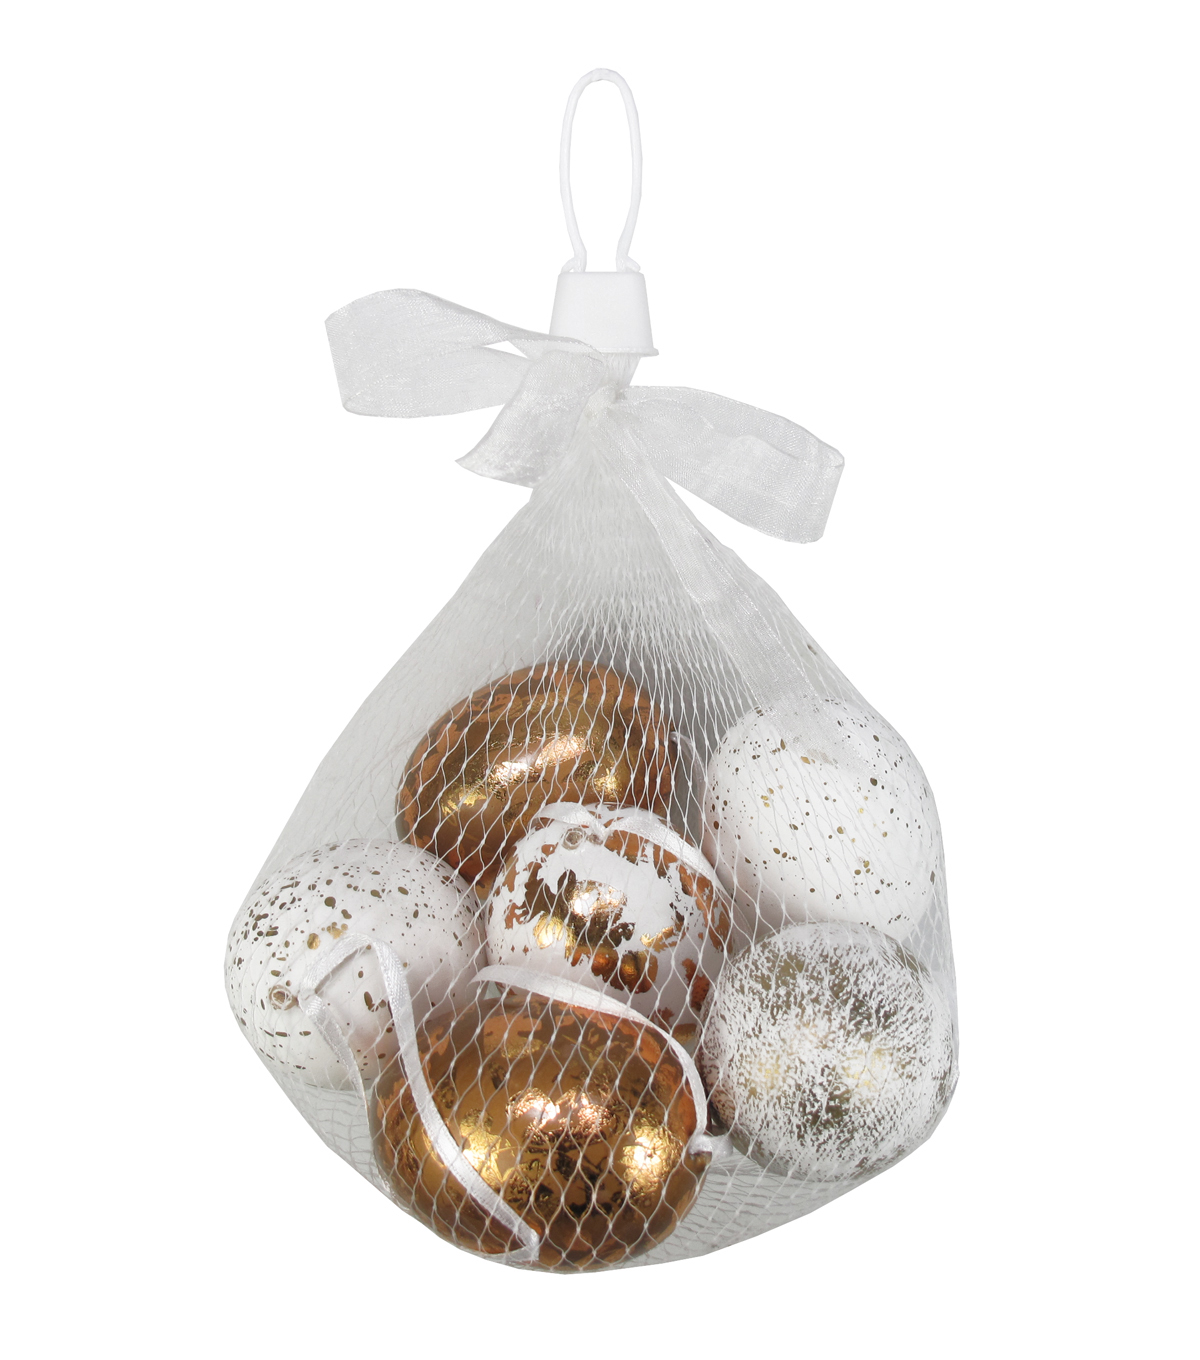 Easter 6pcs Eggs in Mesh Bag-Gold And White Speckles